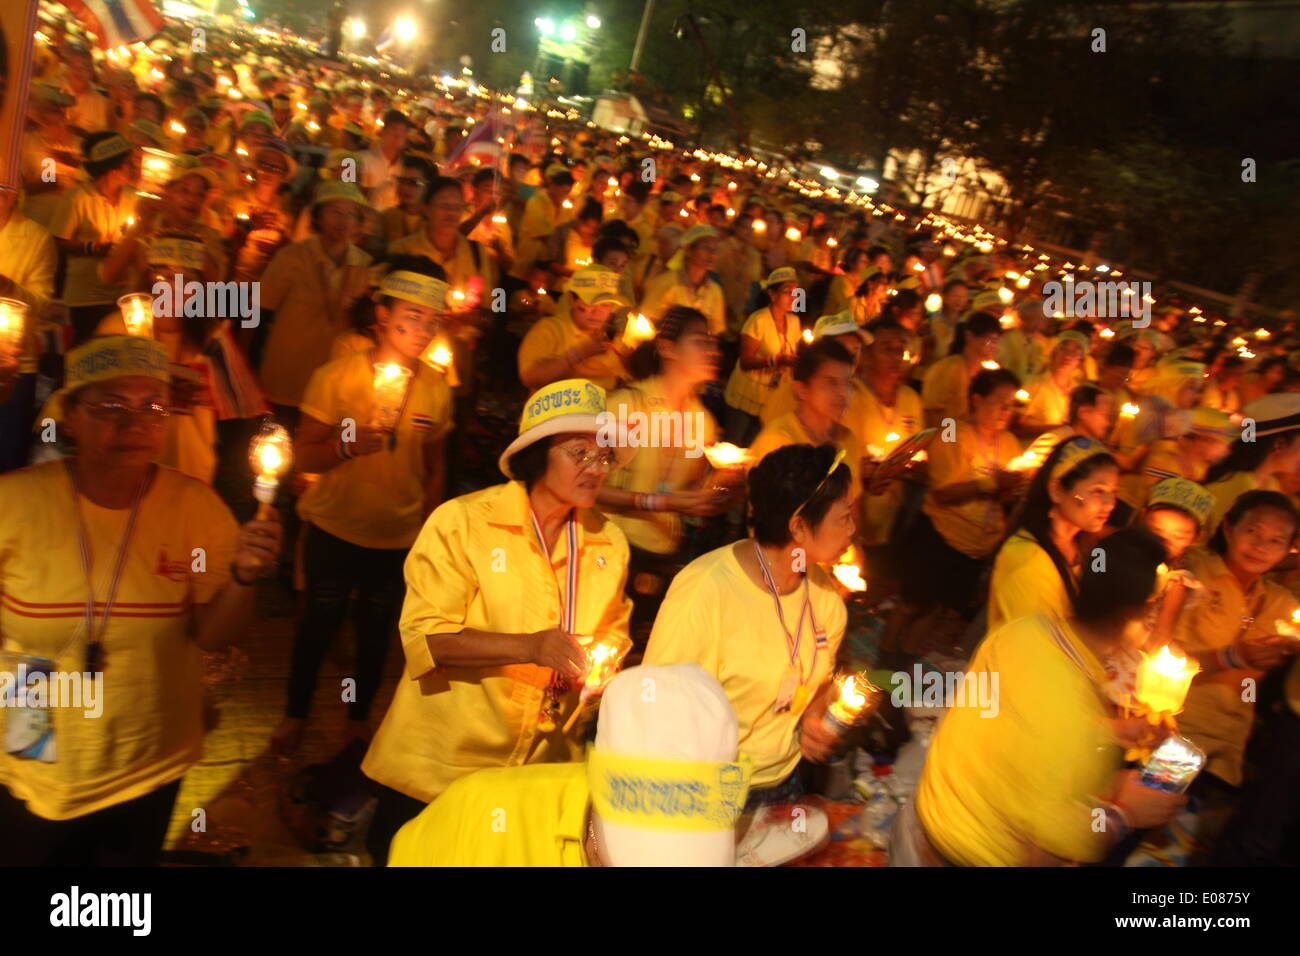 Bangkok, Thailand. 5th May 2014. Anti-government protesters hold candles during a ceremony showing their loyalty to King Bhumibol Adulyadej on the 64th anniversary of his Coronation Day. Anti-government protesters gathered close to the Grand Palace on Coronation Day. Thailand's revered King Bhumibol Adulyadej made a rare public appearance to mark the 64th anniversary of his coronation. Credit:  Sanji Dee/Alamy Live News - Stock Image